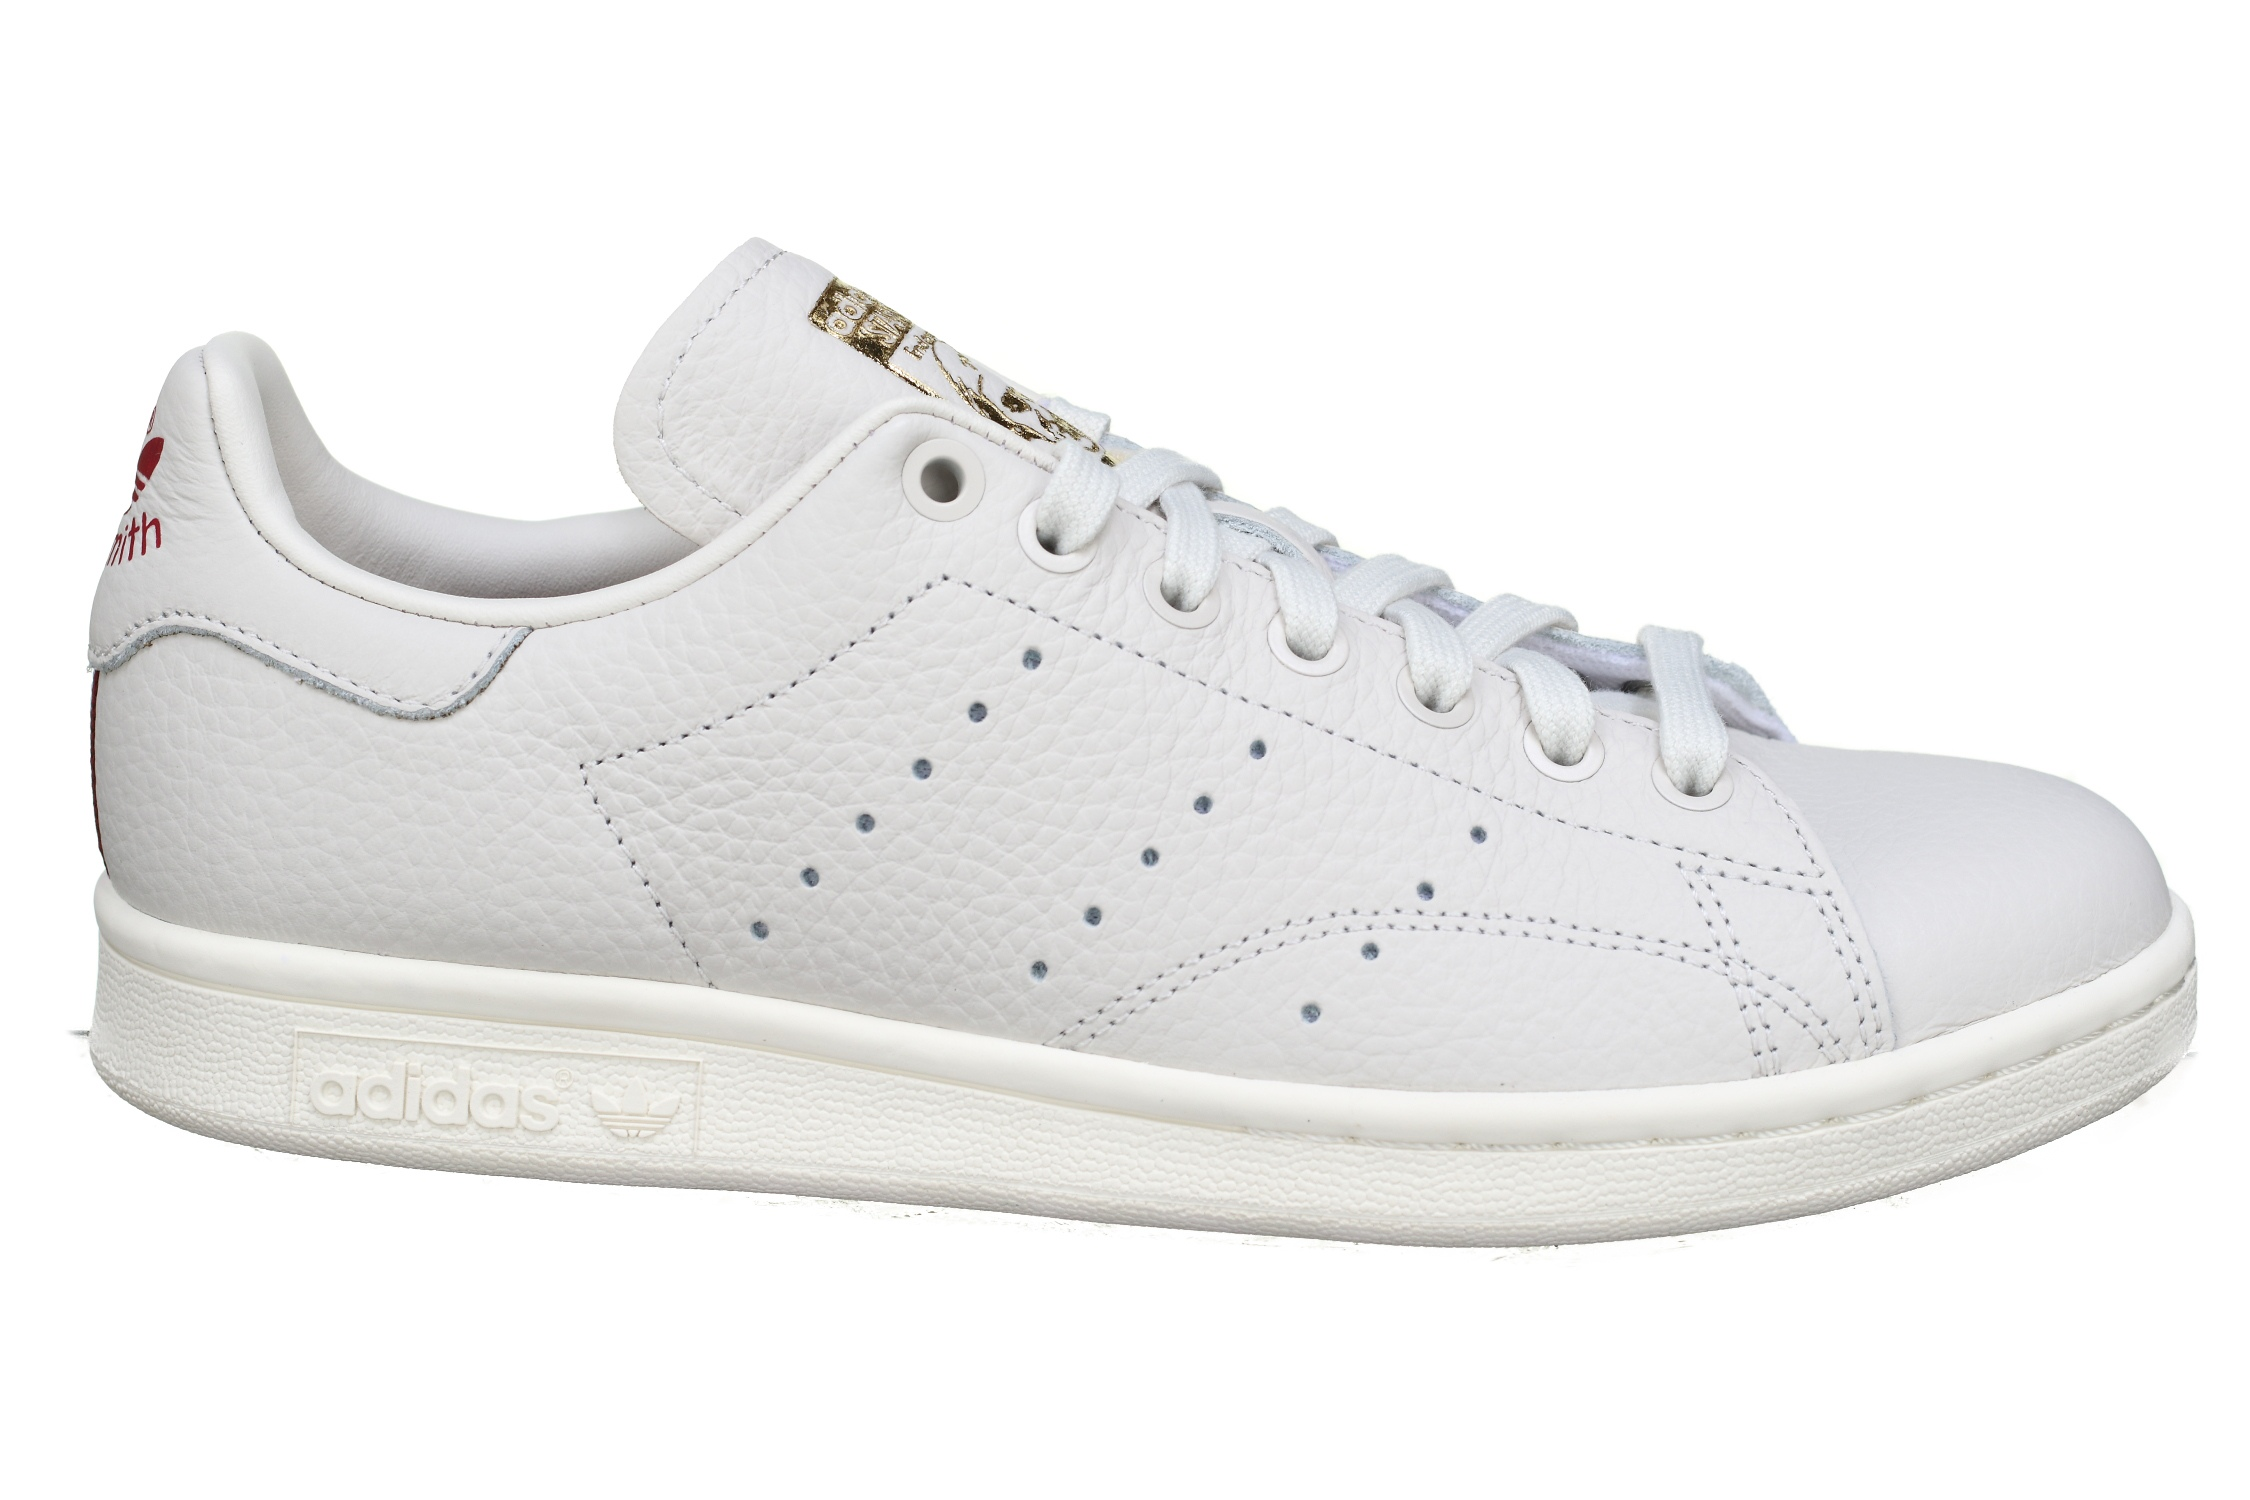 https://www.leadermode.com/164714/adidas-stan-smith-w-bd8065-beige.jpg